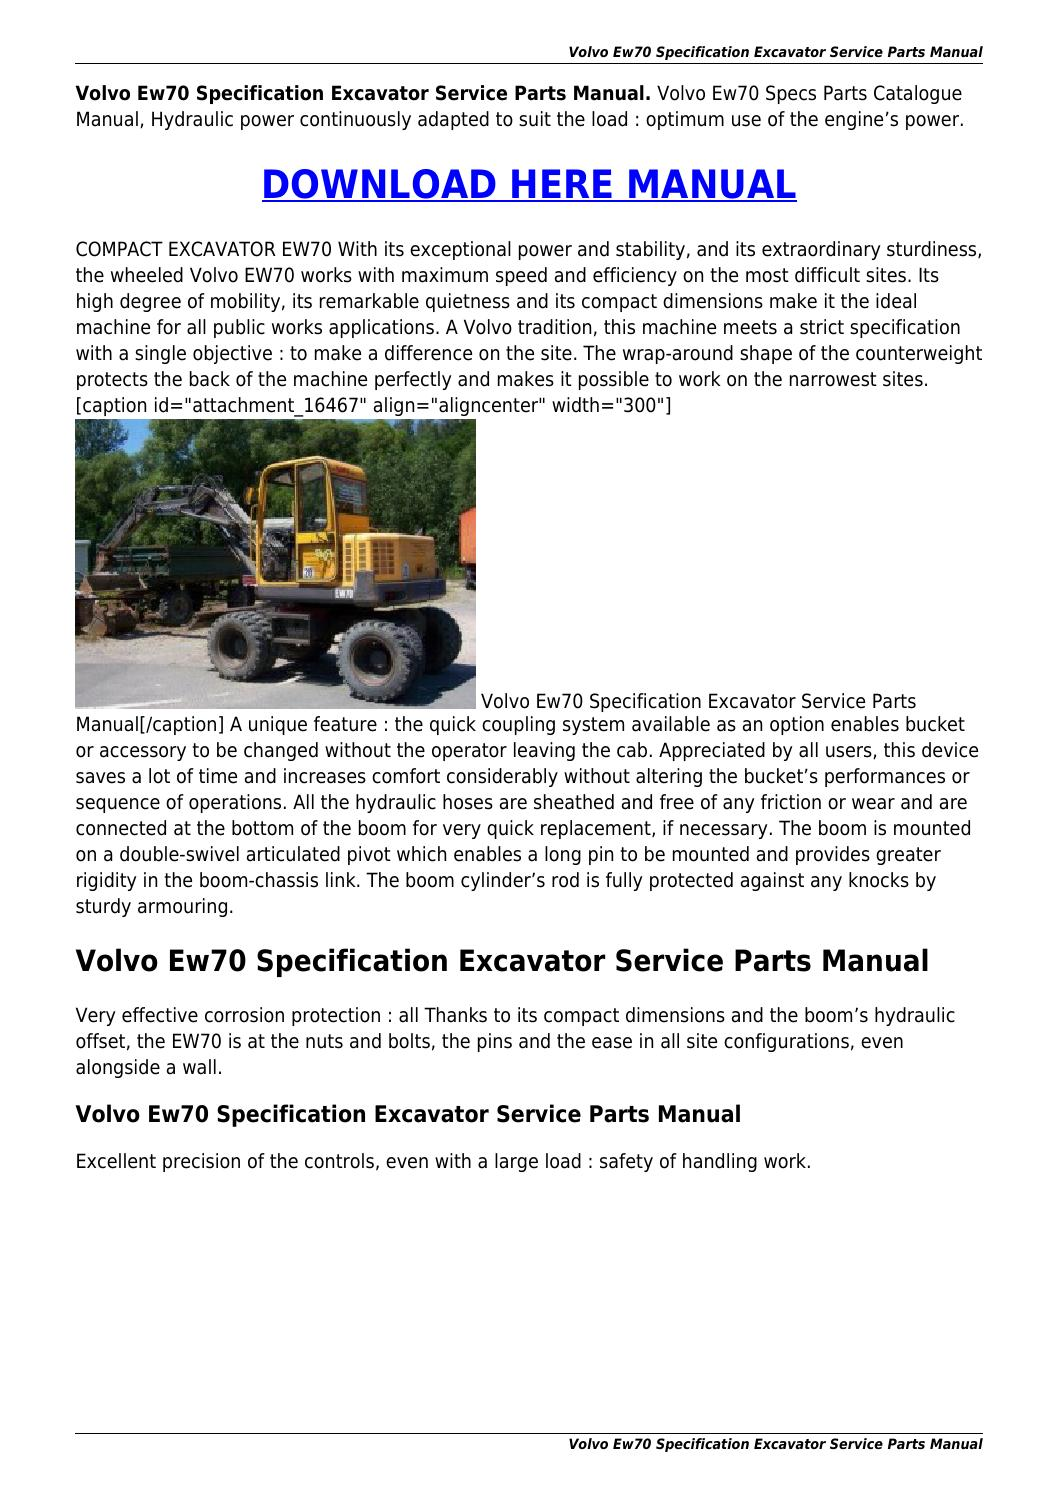 Volvo Ew70 Specification Excavator Service Parts Manual By Jhoncarls Engine Diagram Issuu